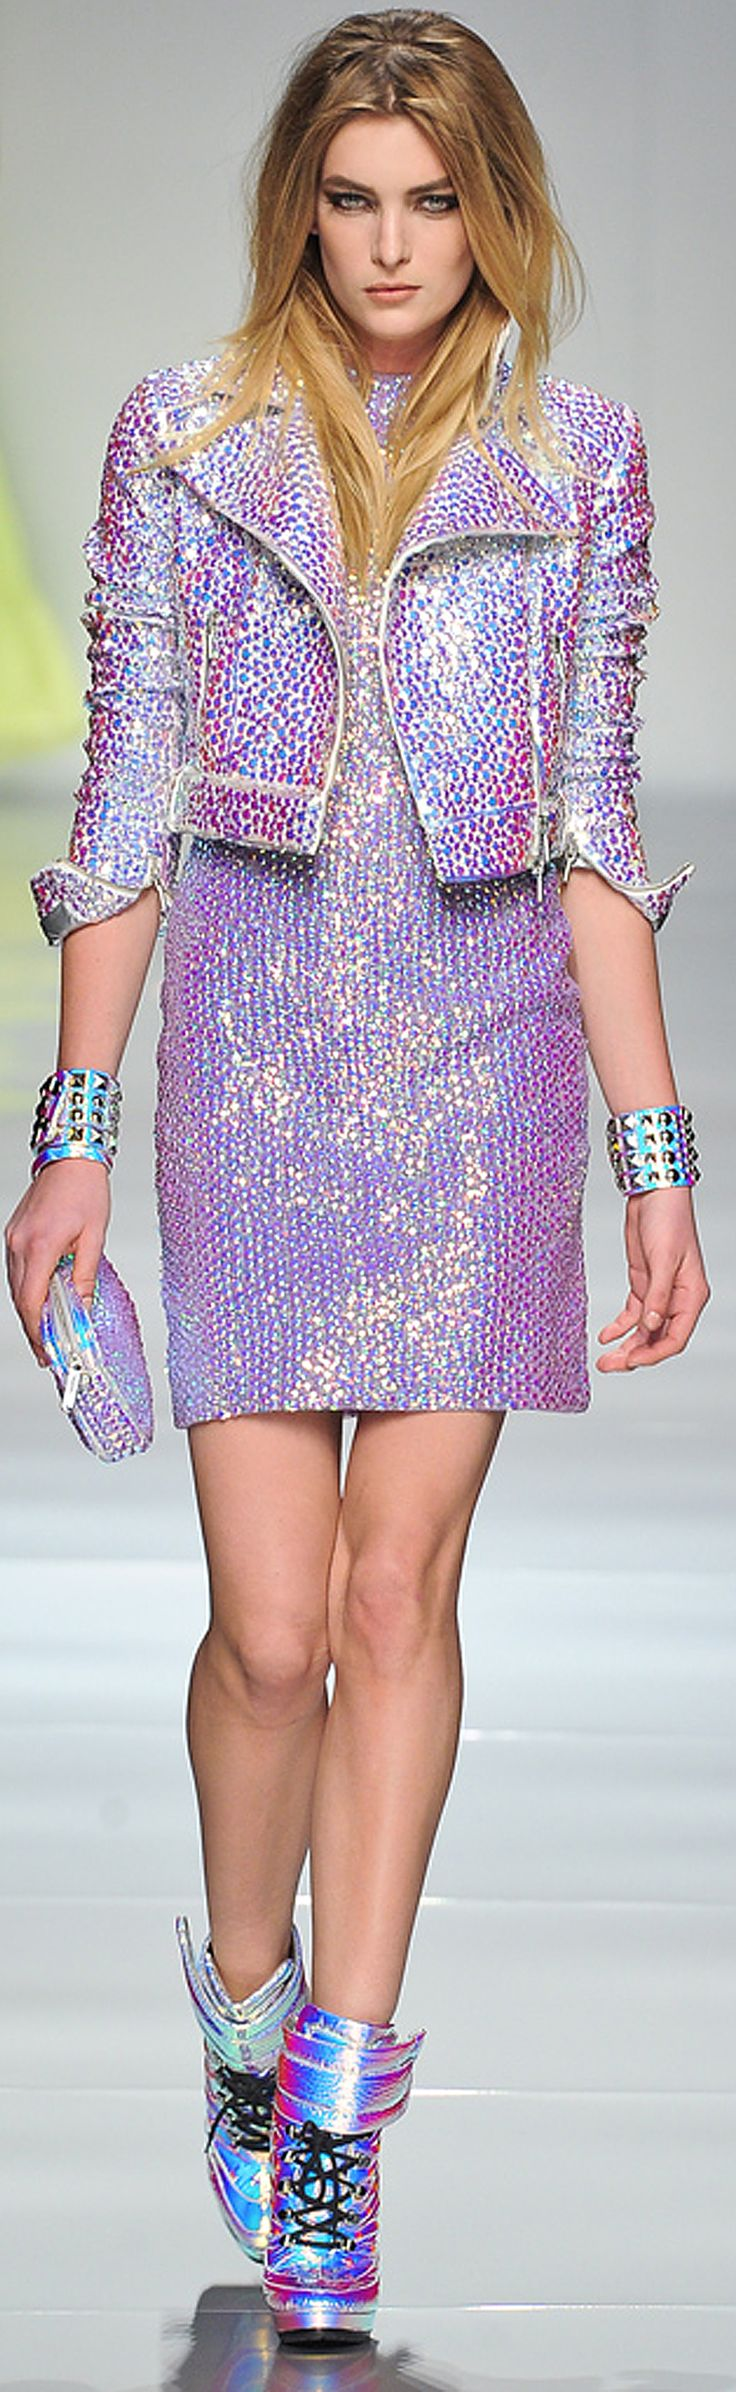 ~Blumarine Spring 2013 | The House of Beccaria#..sparkly..she looks a little pissed though..lol